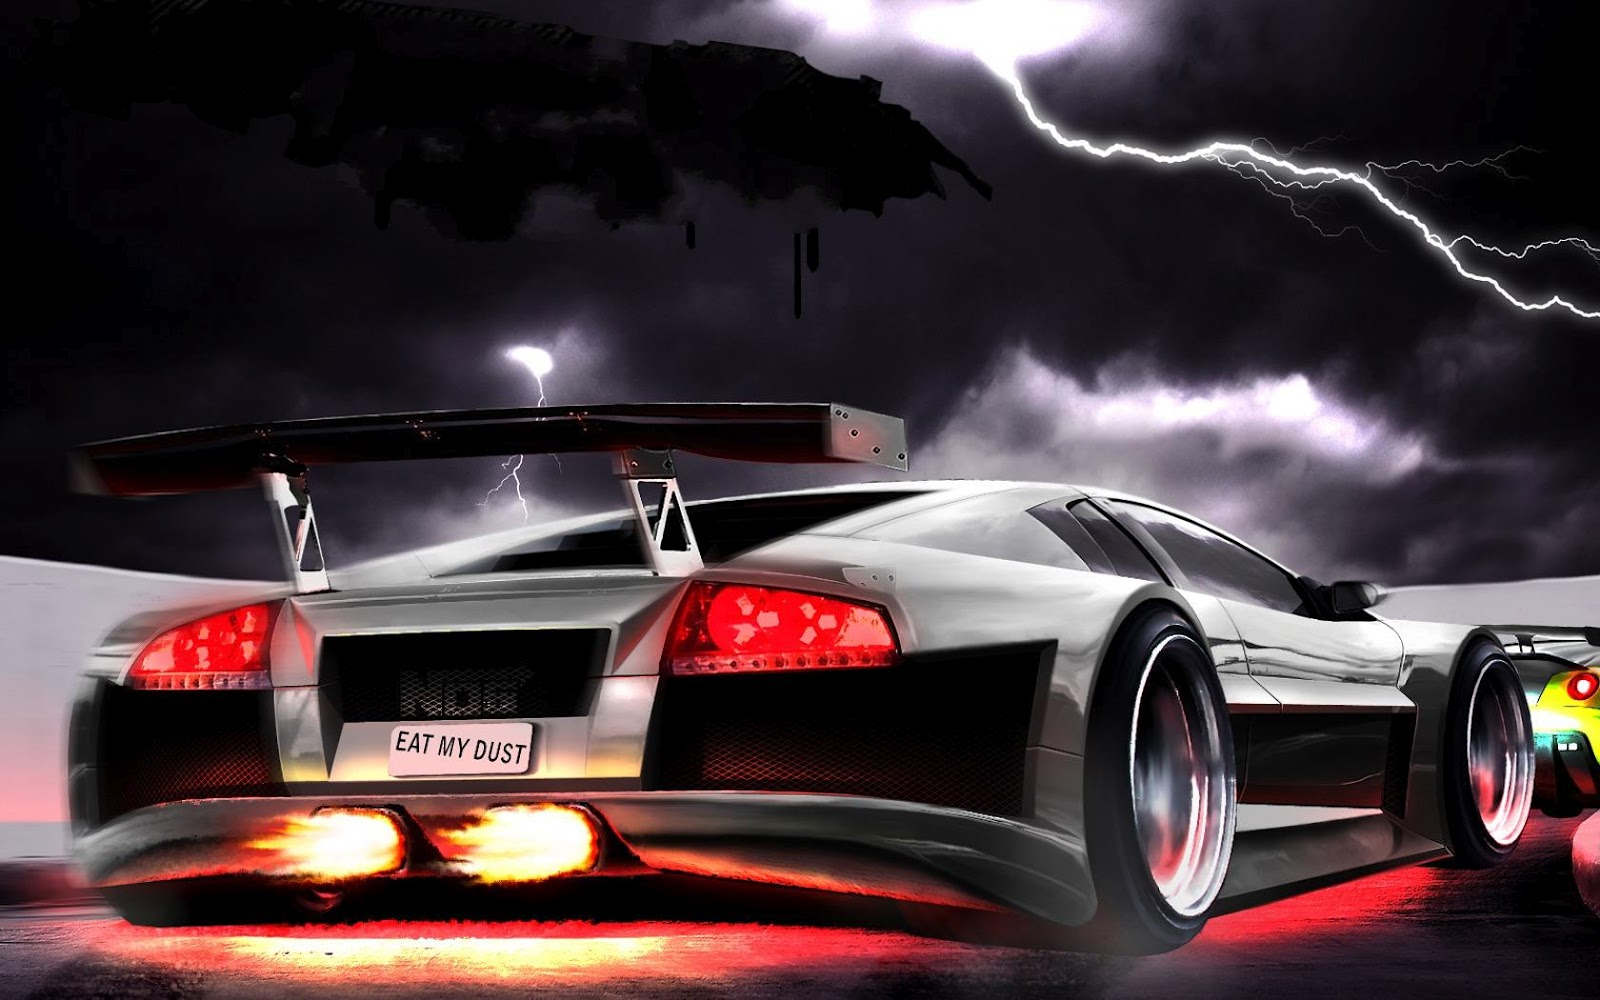 Wallpapers Download Pictures Images and Photos Cool 3d Car 1600x1000